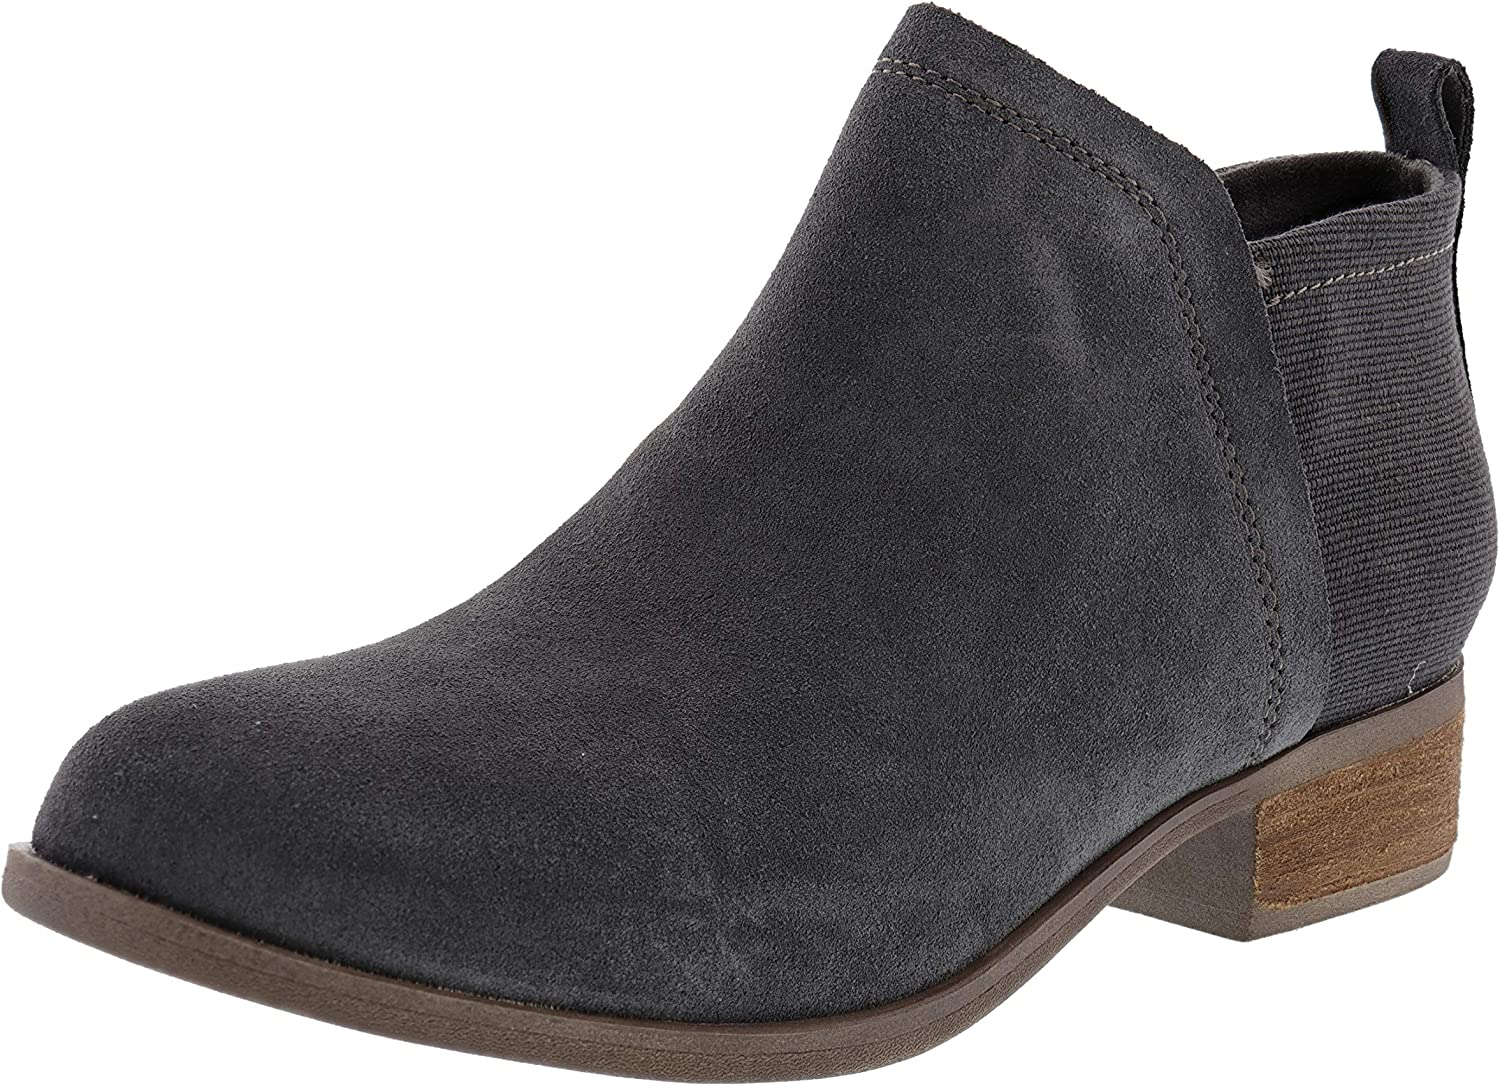 TOMS Women's Deia Ankle Bootie Numeric_6 supreme Iron Forged Bombing free shipping